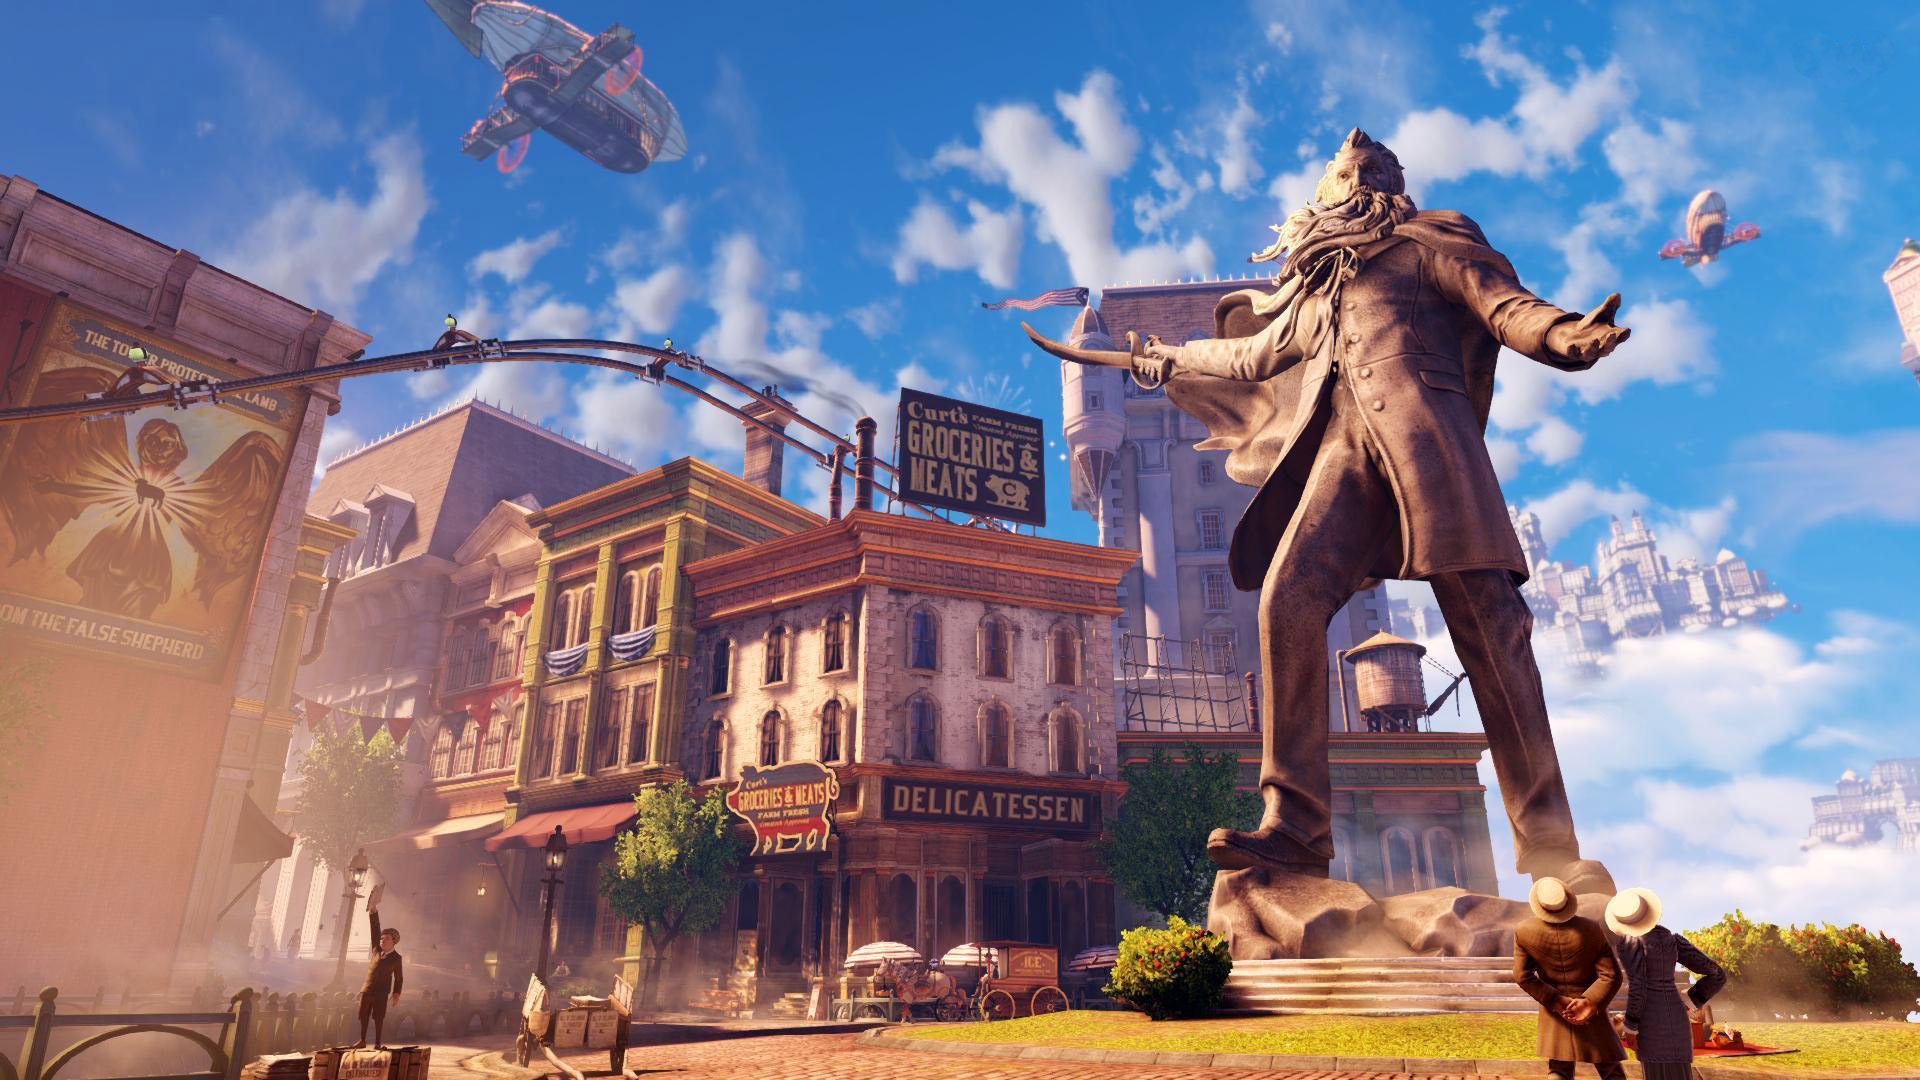 There is always a man, a lighthouse, and a city. Bioshock: Infinite drew to the original series in more ways than one, receiving critical acclaim and even now being cited as one of the best video games of all time.